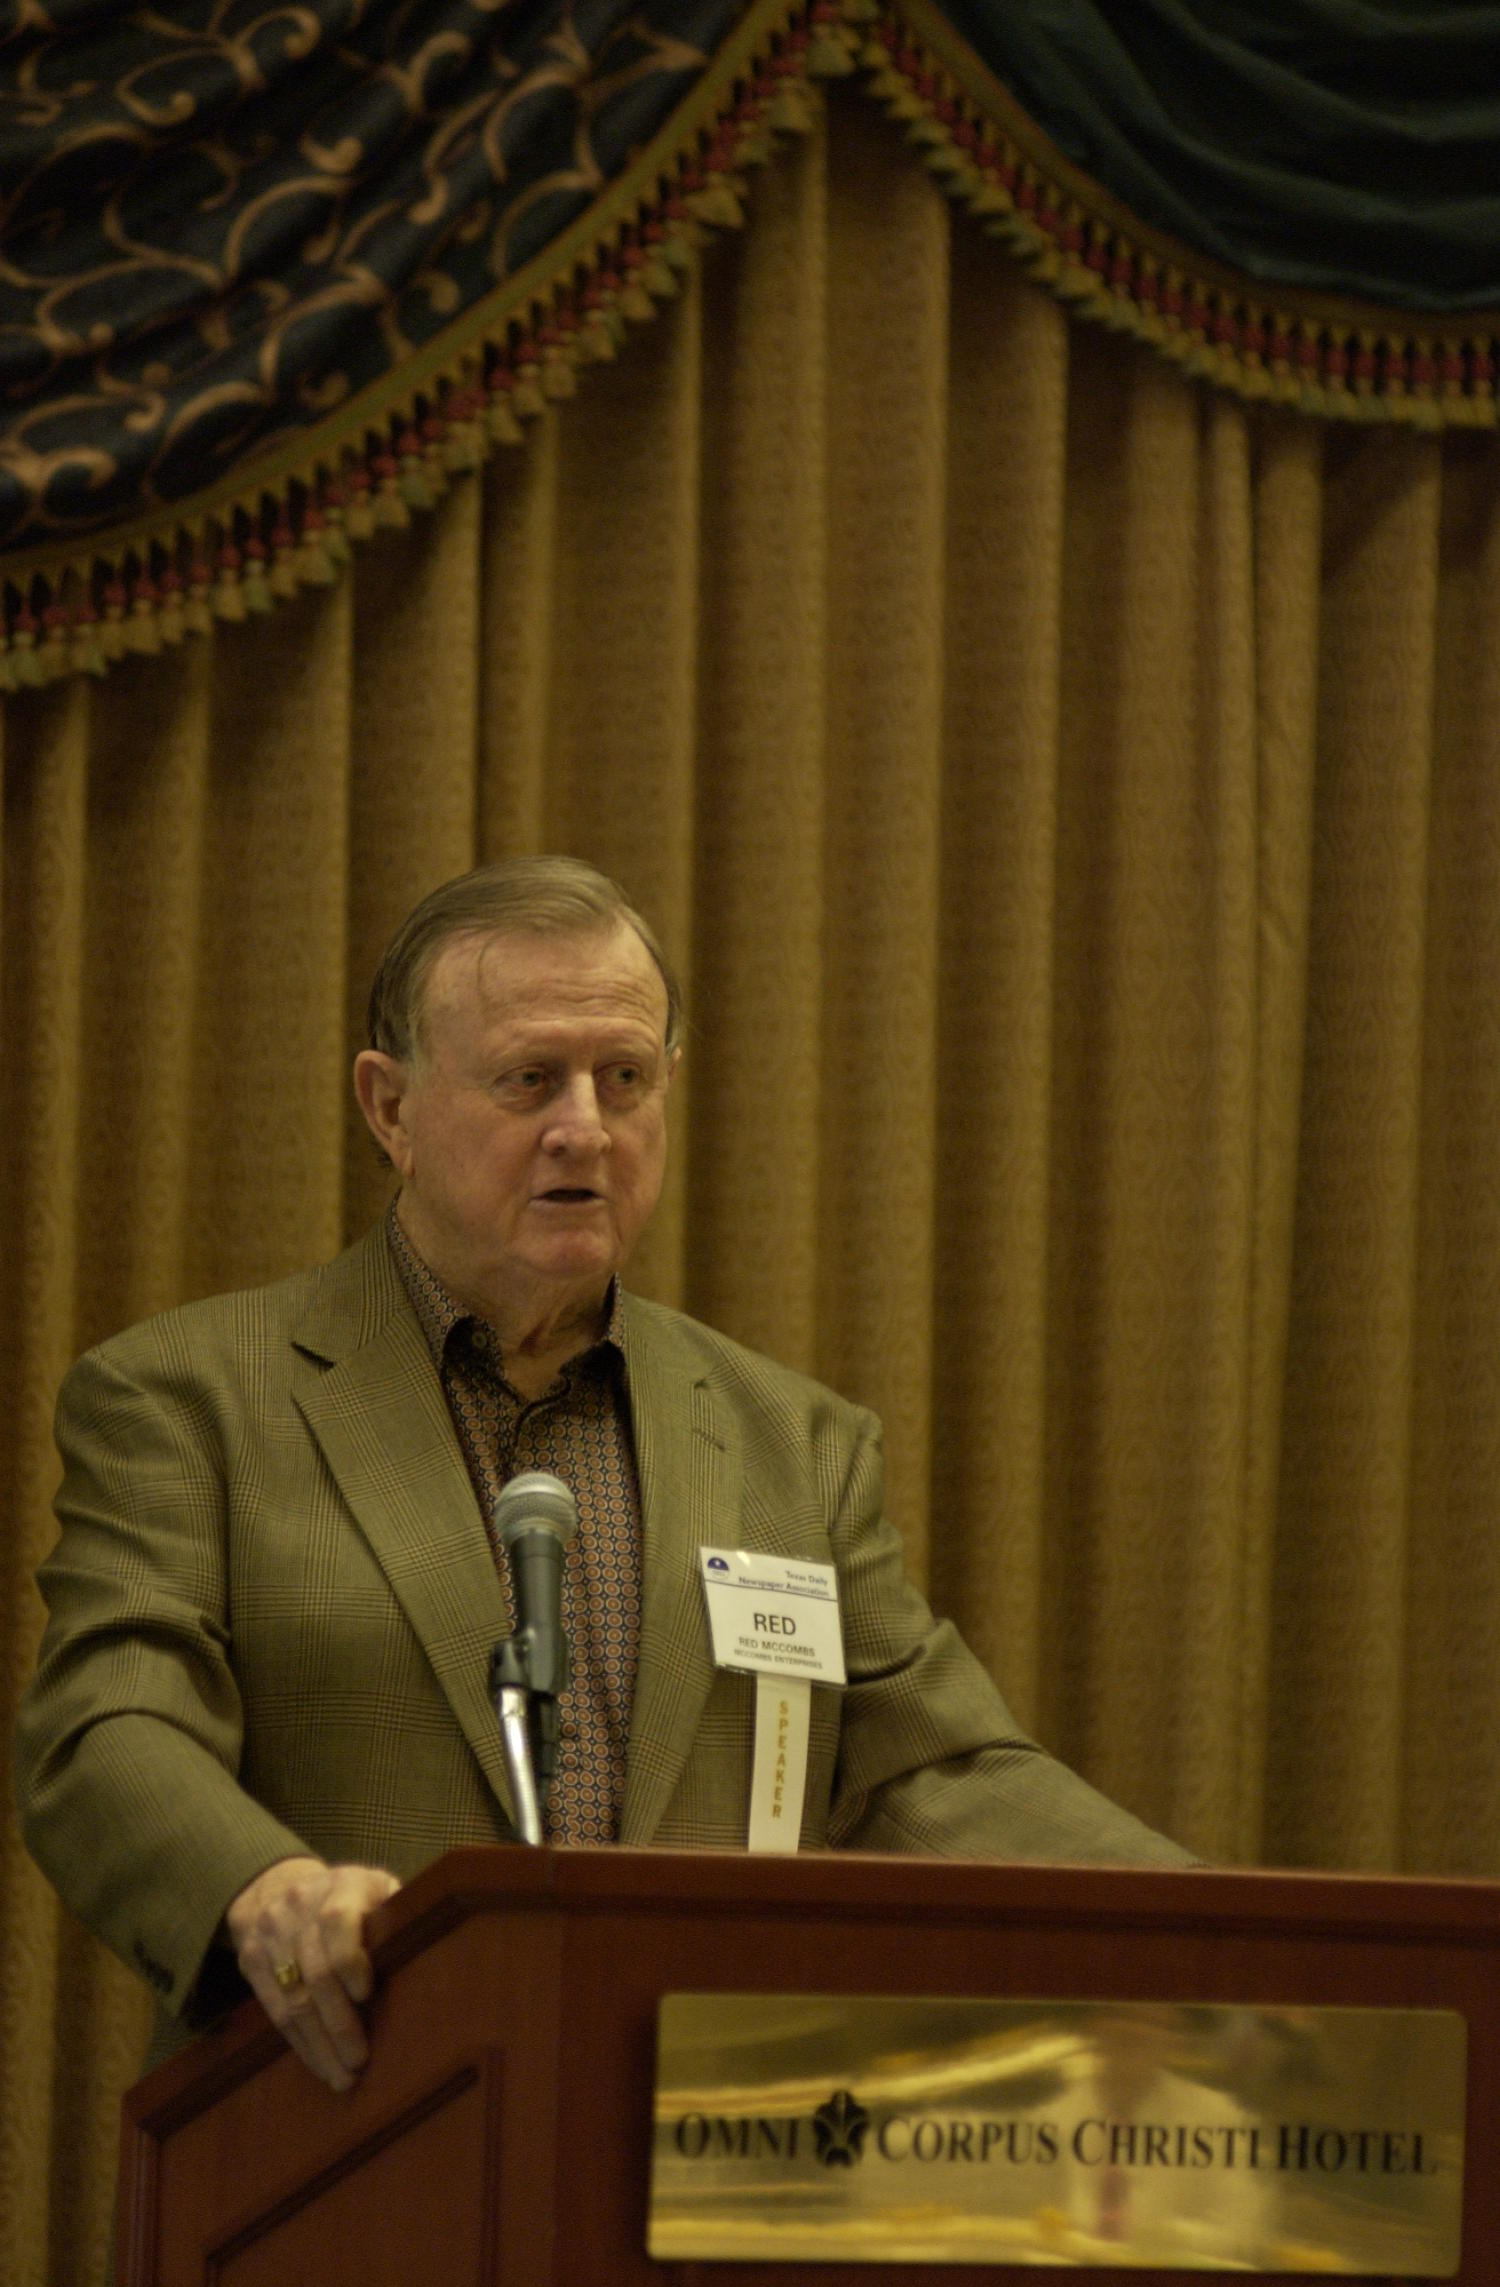 """[Billy Joe """"Red"""" McCombs guest speaking at TDNA conference, 2], Photograph of Billy Joe """"Red"""" McCombs of McCombs Enterprises, guest speaking at the 2004 Texas Daily News Association (TDNA) annual conference held in Corpus Christi. McCombs is seen standing at a podium and speaking into the microphone as he addresses the guests of the conference.,"""